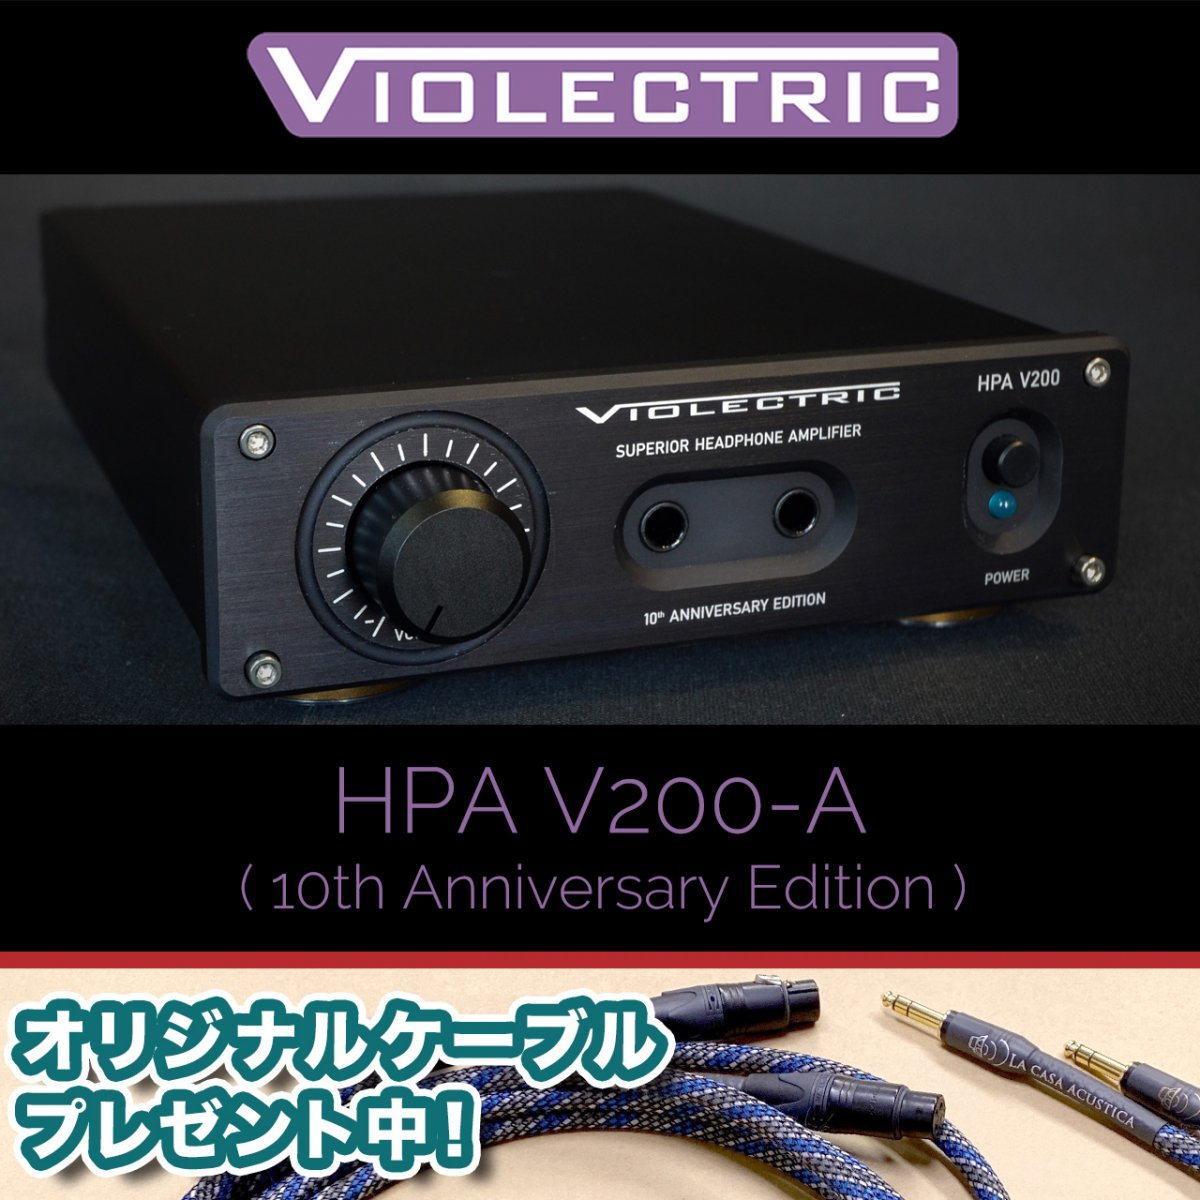 HPA V200-A (10th Anniversary Edition)